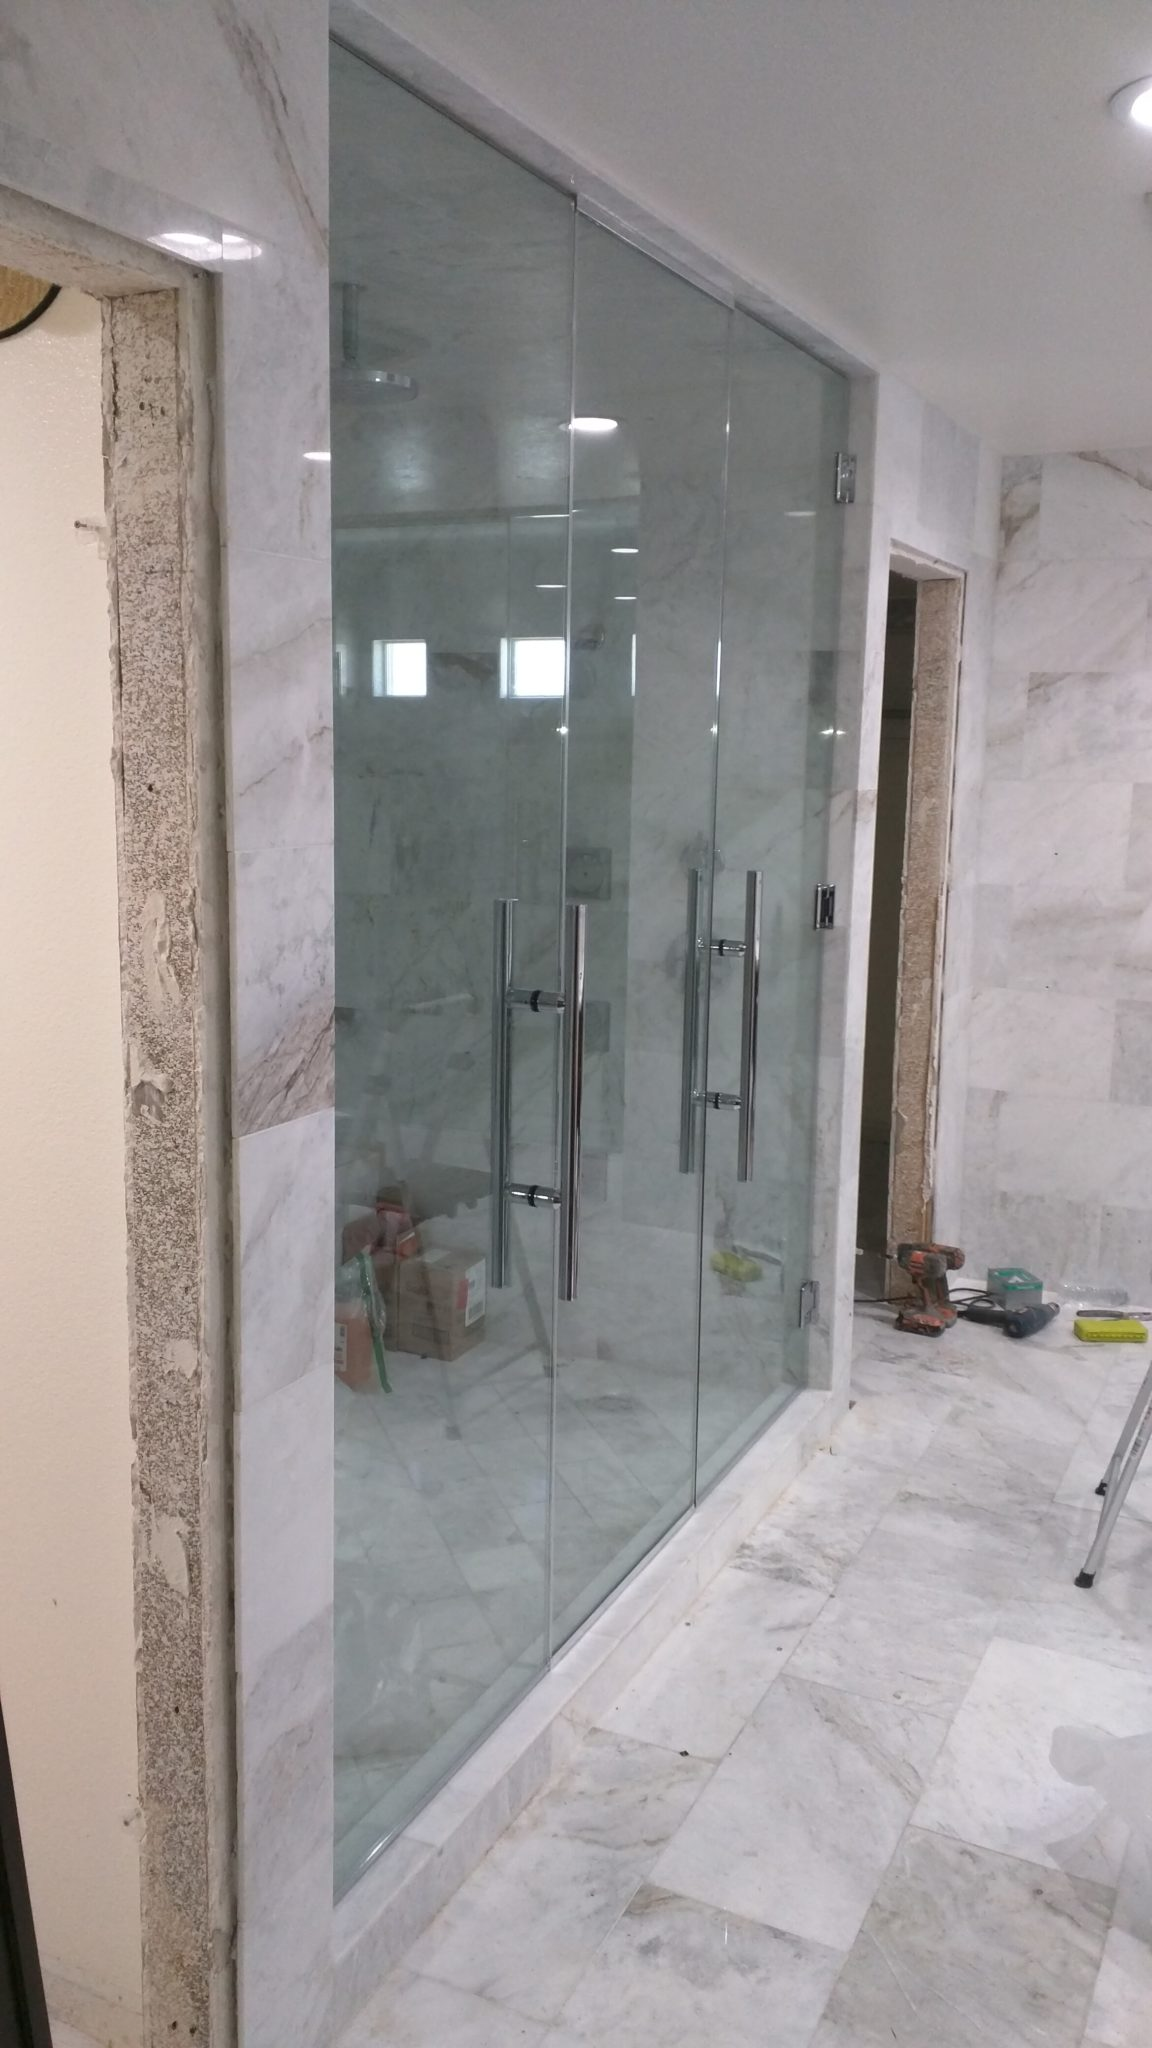 Frameless glass shower doors a cutting edge glass mirror custom double shower door enclosure system a cutting edge glass mirror planetlyrics Image collections